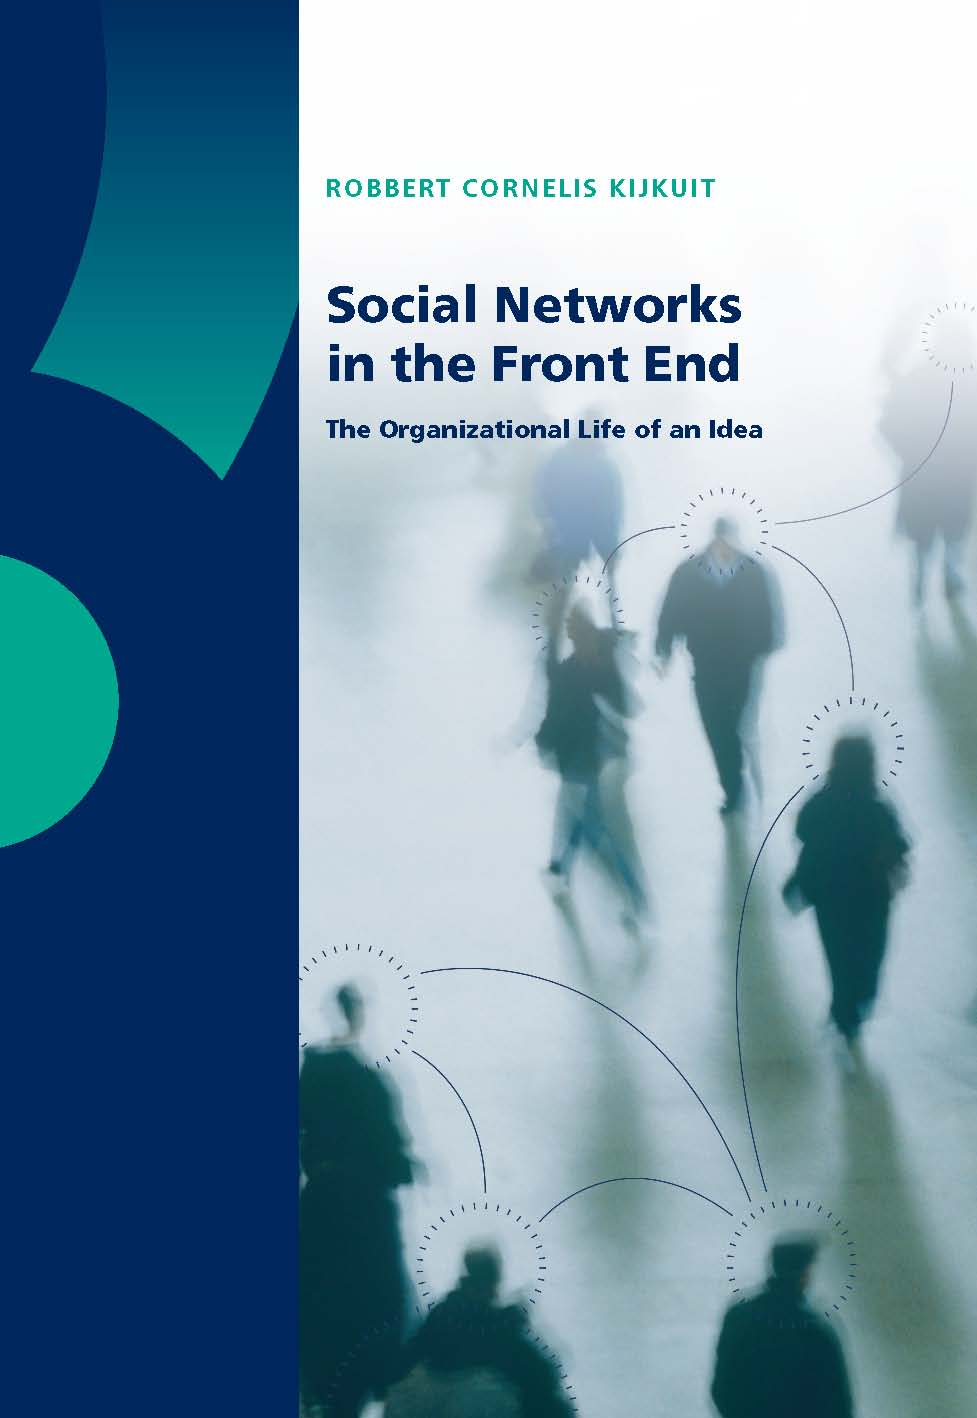 Social Networks in the Front End: The Organizational Life of an Idea